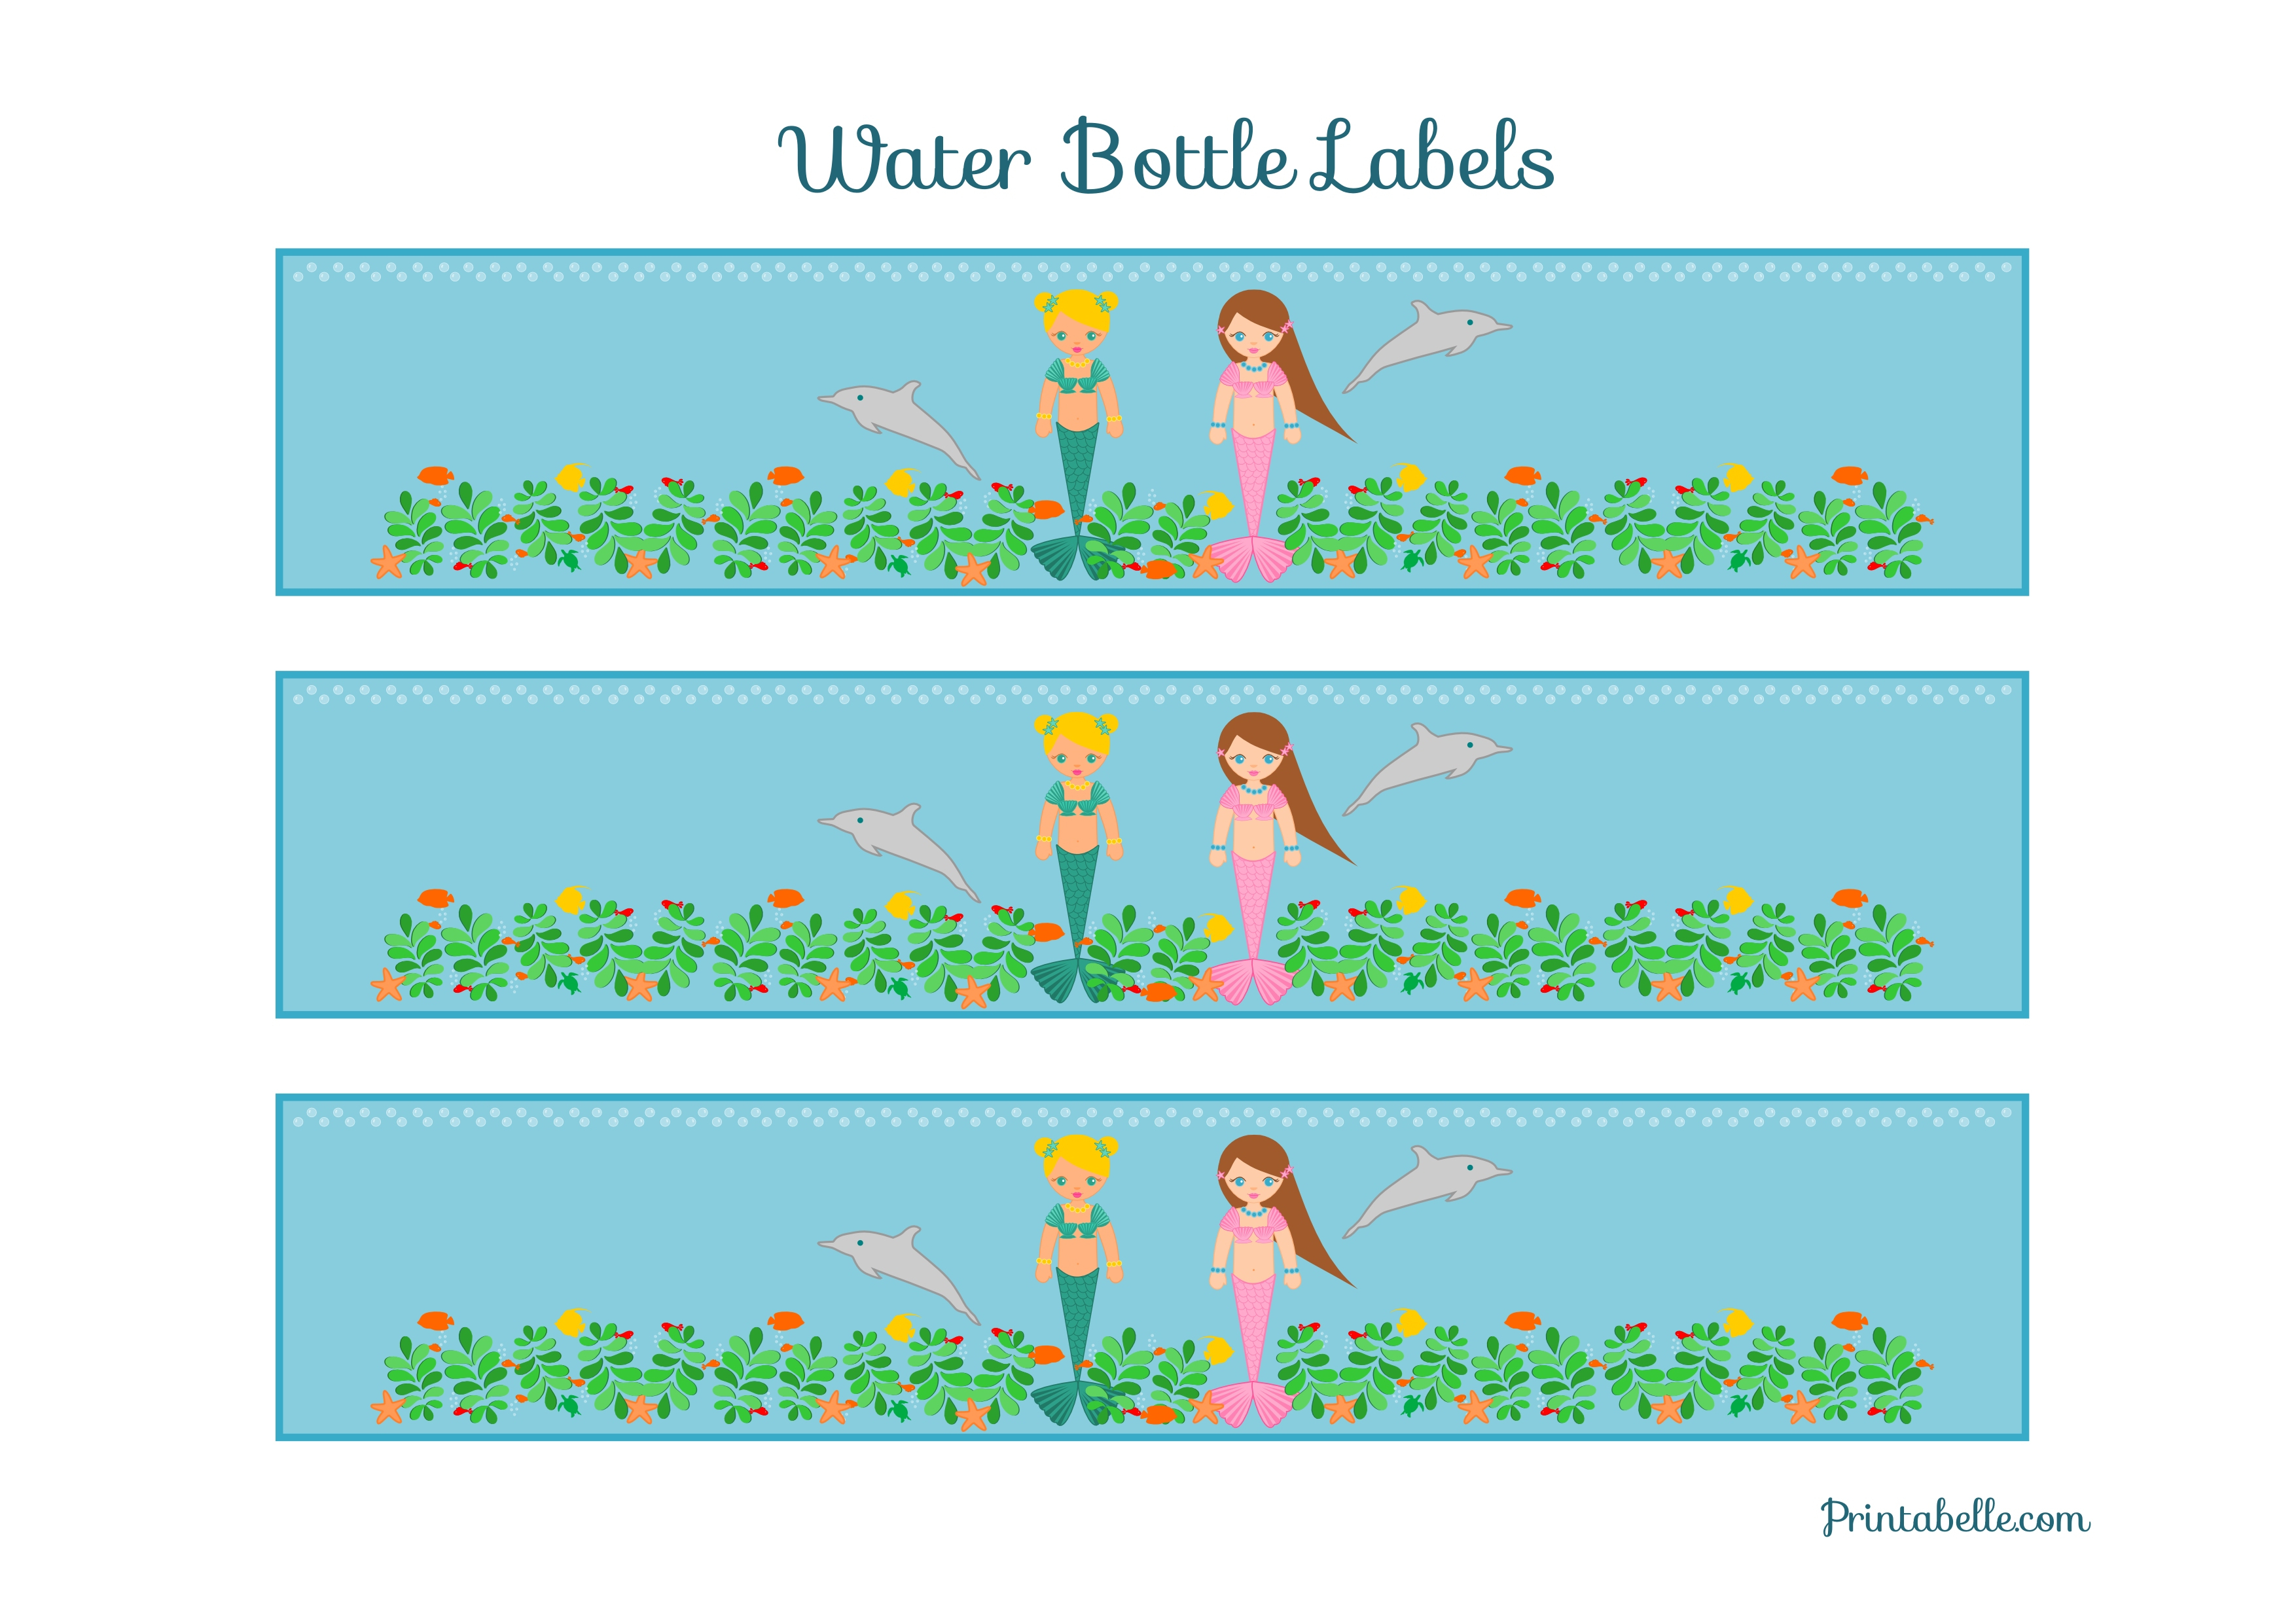 Free Mermaid Birthday Party Printables From Printabelle | Catch My Party - Free Printable Little Mermaid Water Bottle Labels